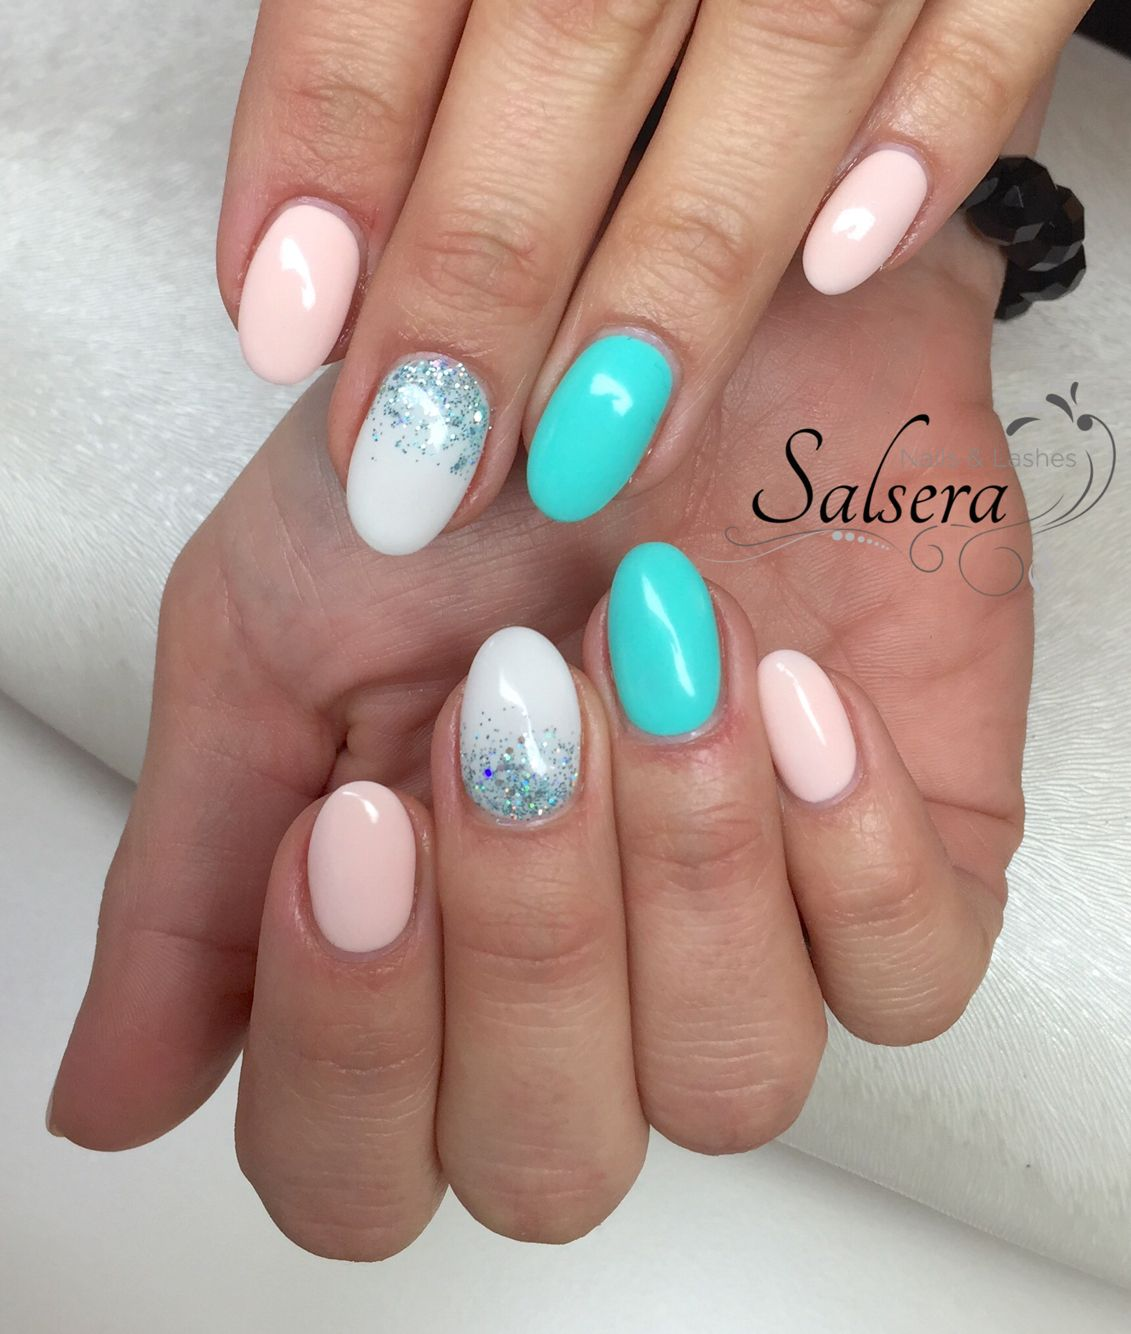 Nails • Nägel • Nageldesign • Salsera Nails & Lashes • Frankfurt am ...